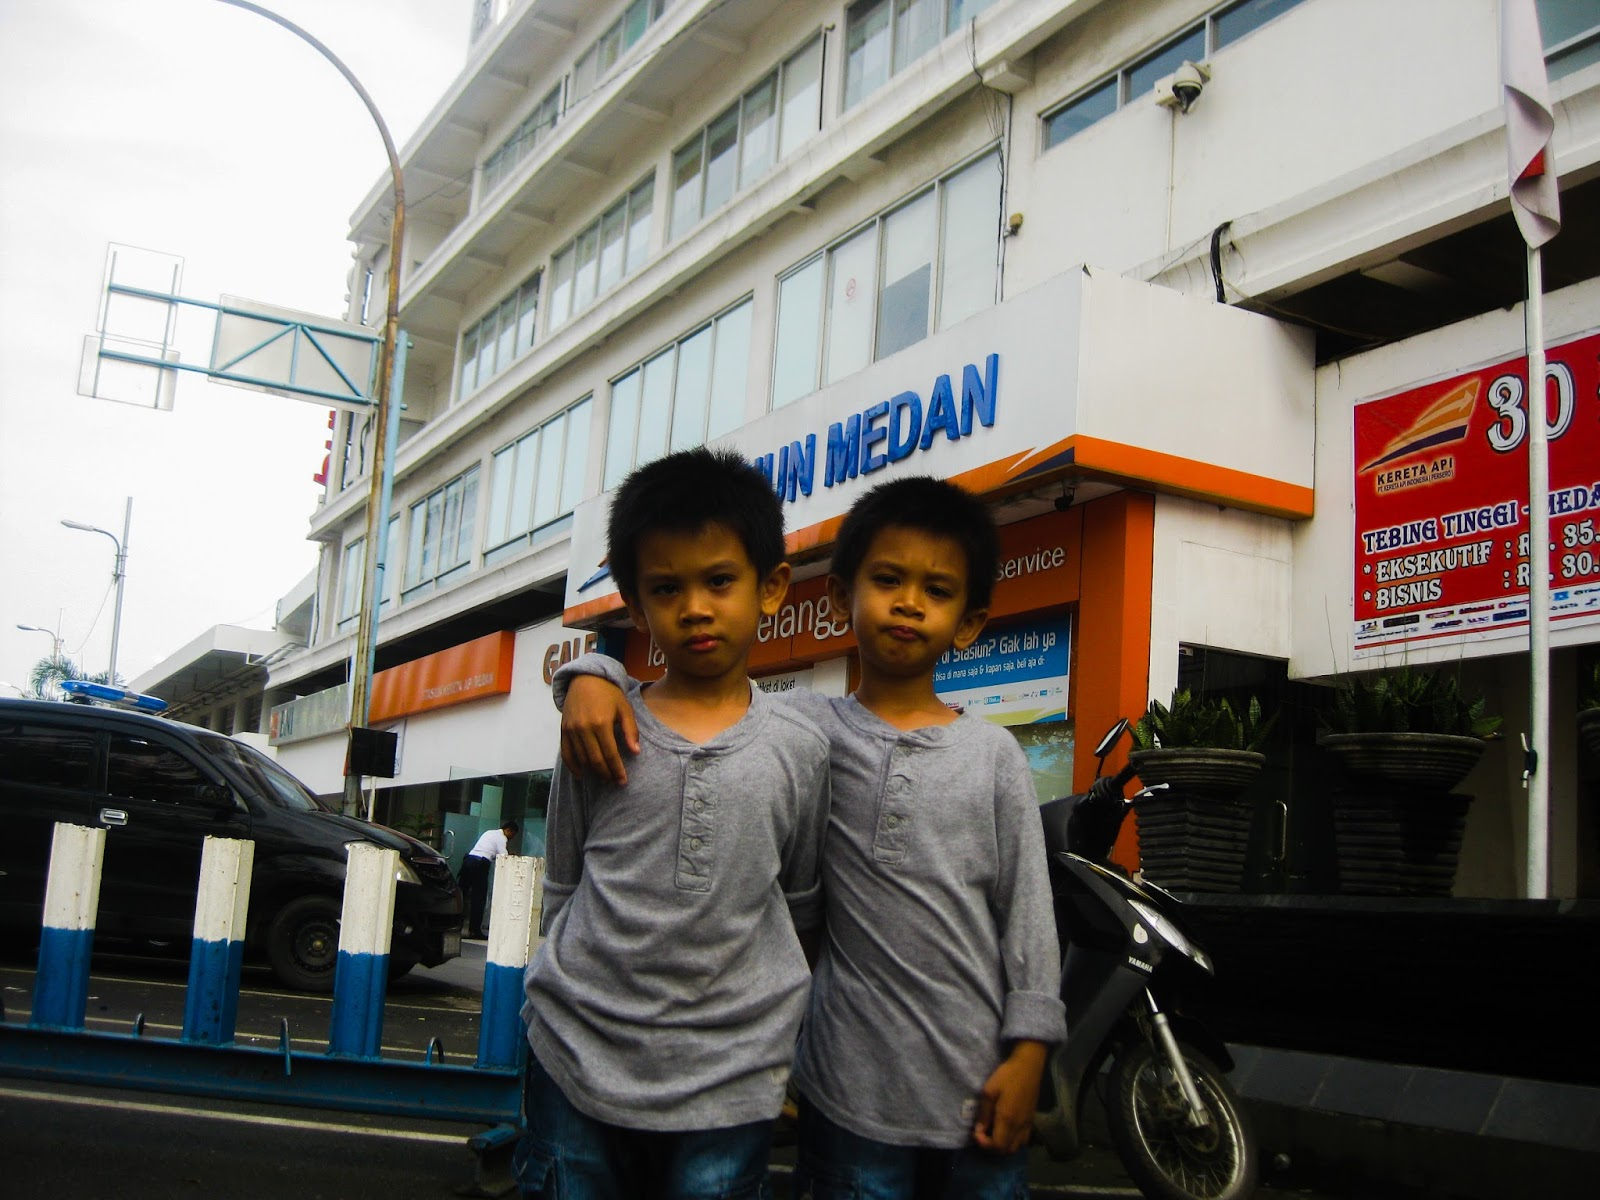 The twins Jibran-Rafiq with a weekend trip